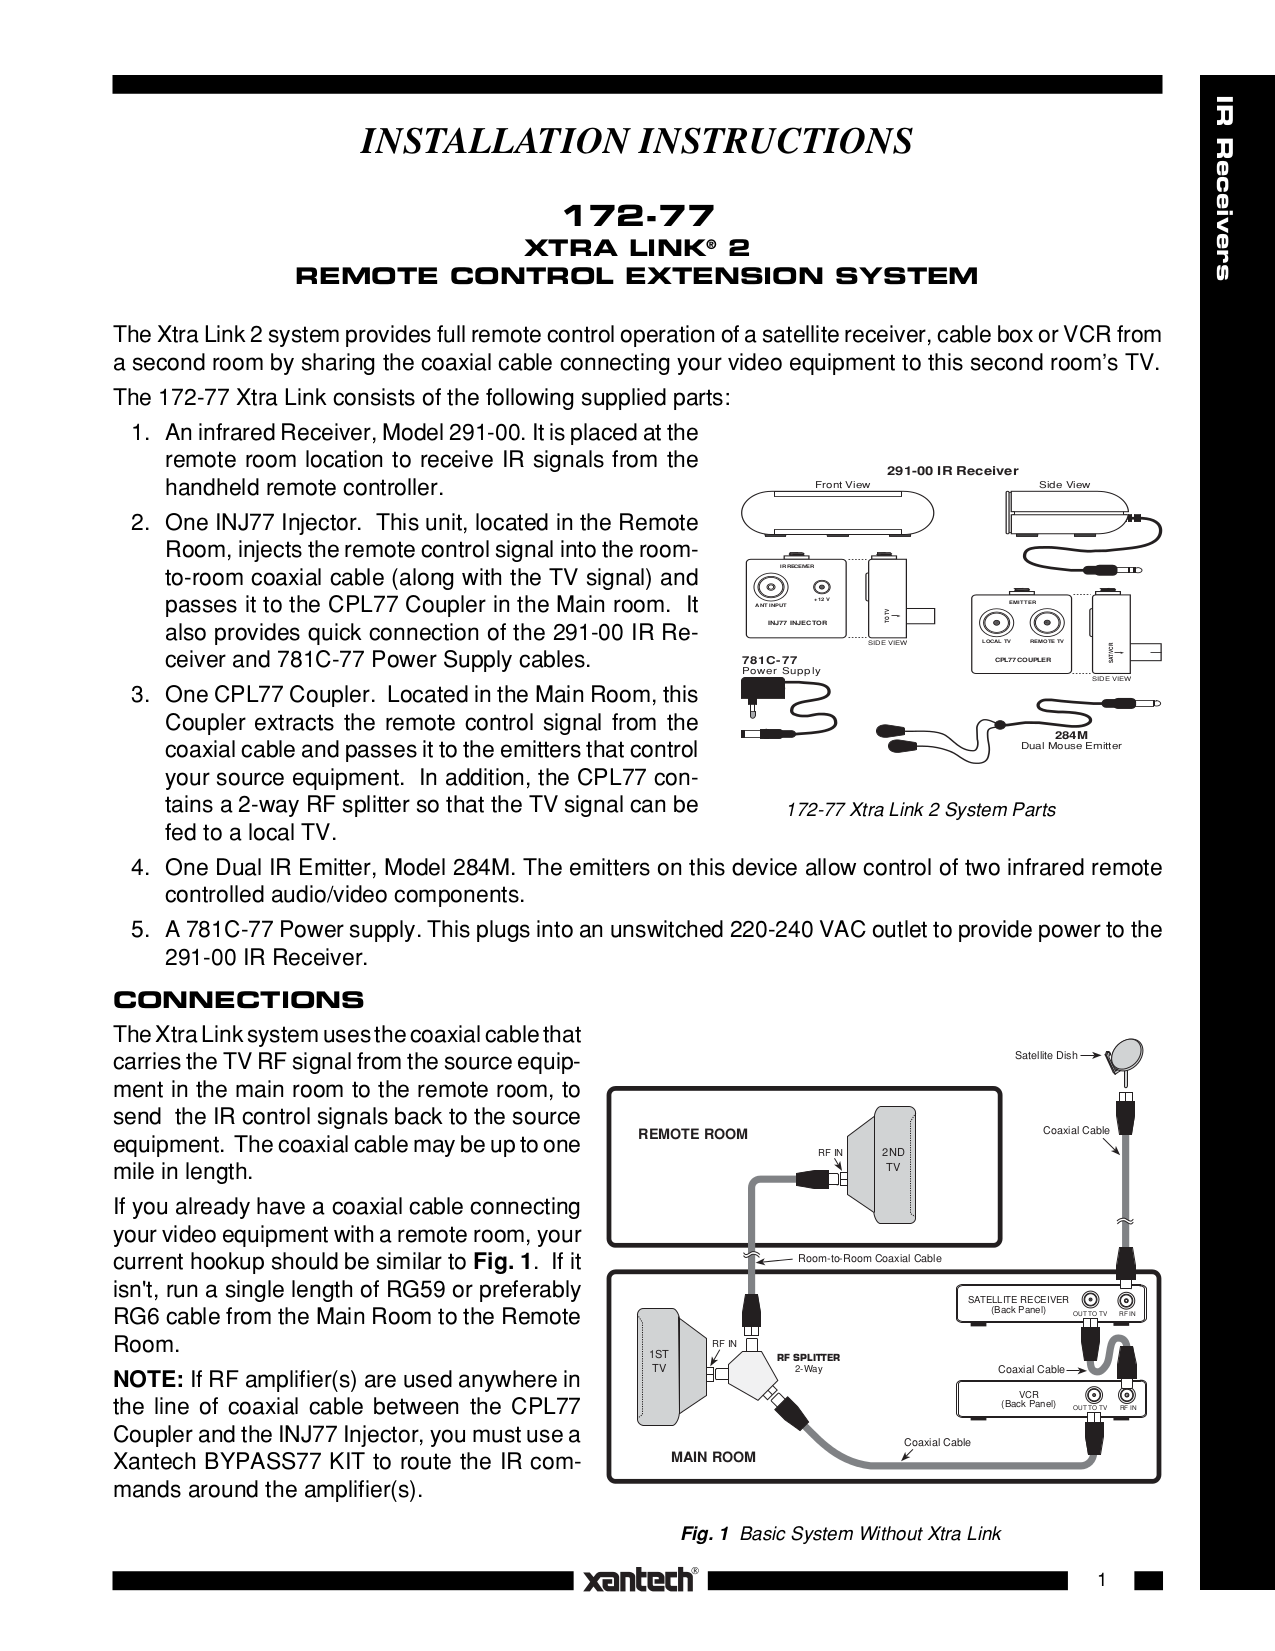 pdf for Xantech Other 284M Emitters manual